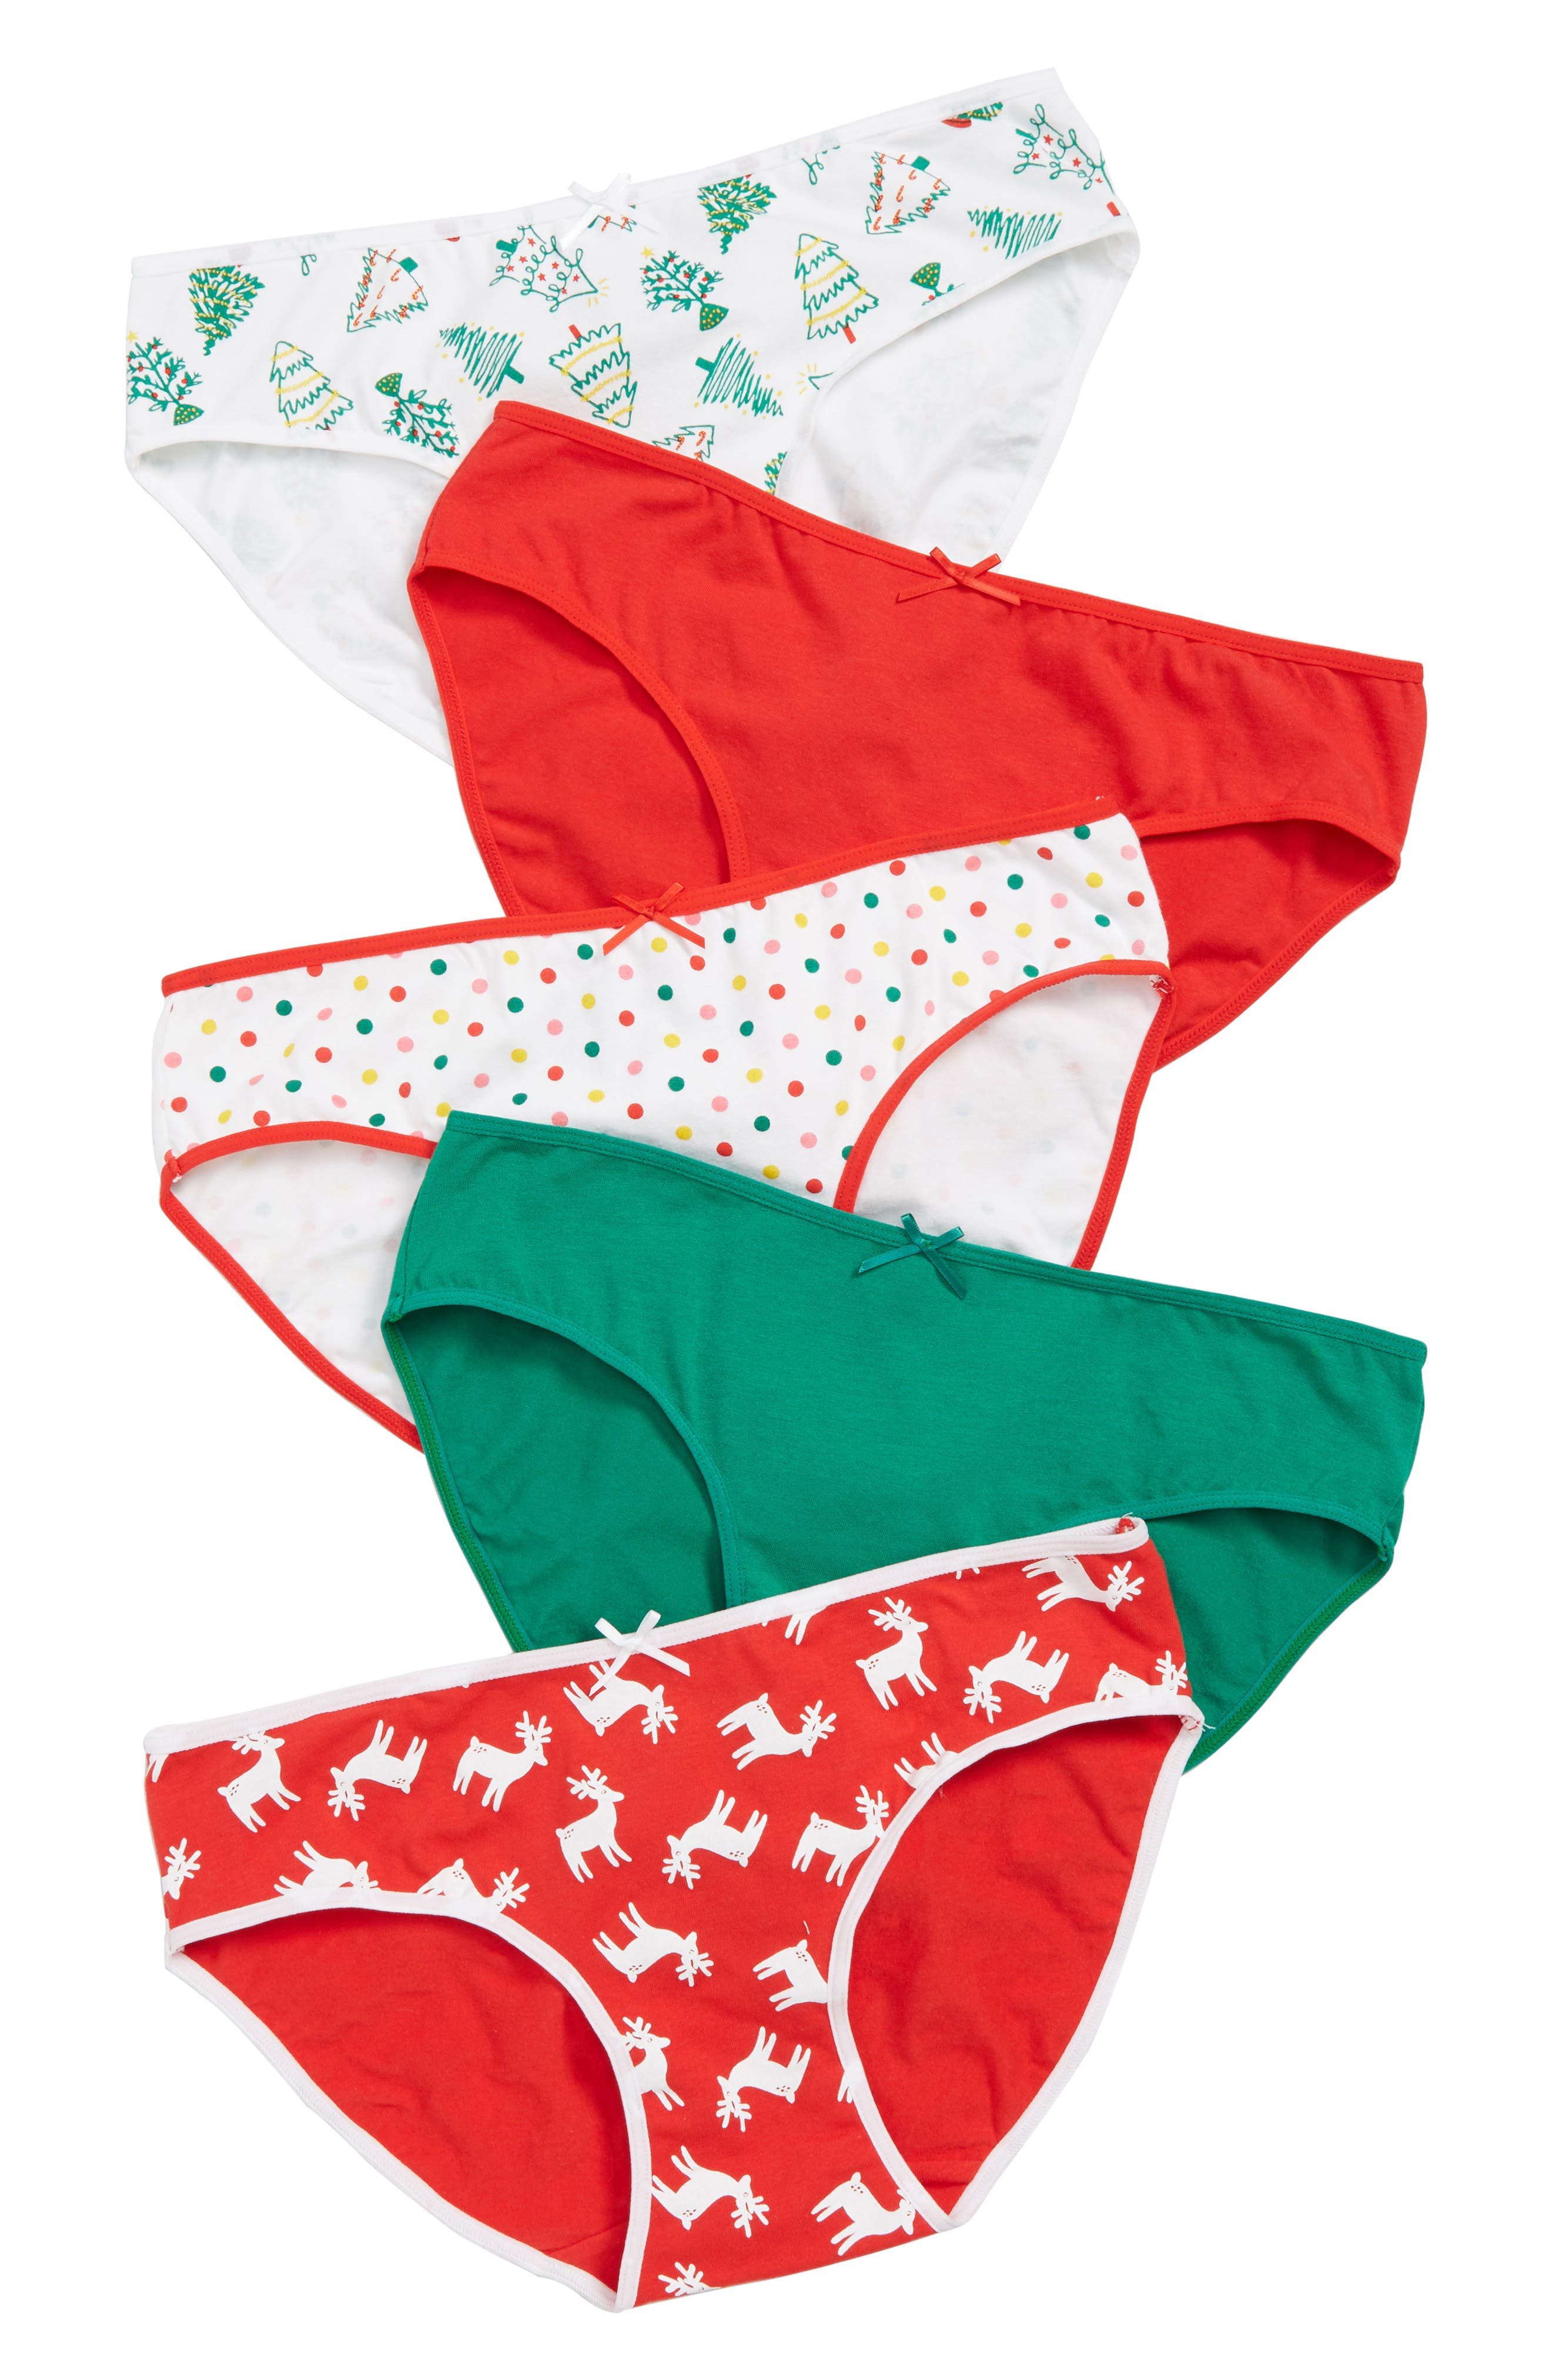 5-Pack Hipster Briefs,                             Alternate thumbnail 2, color,                             HOLIDAY CHEER PACK